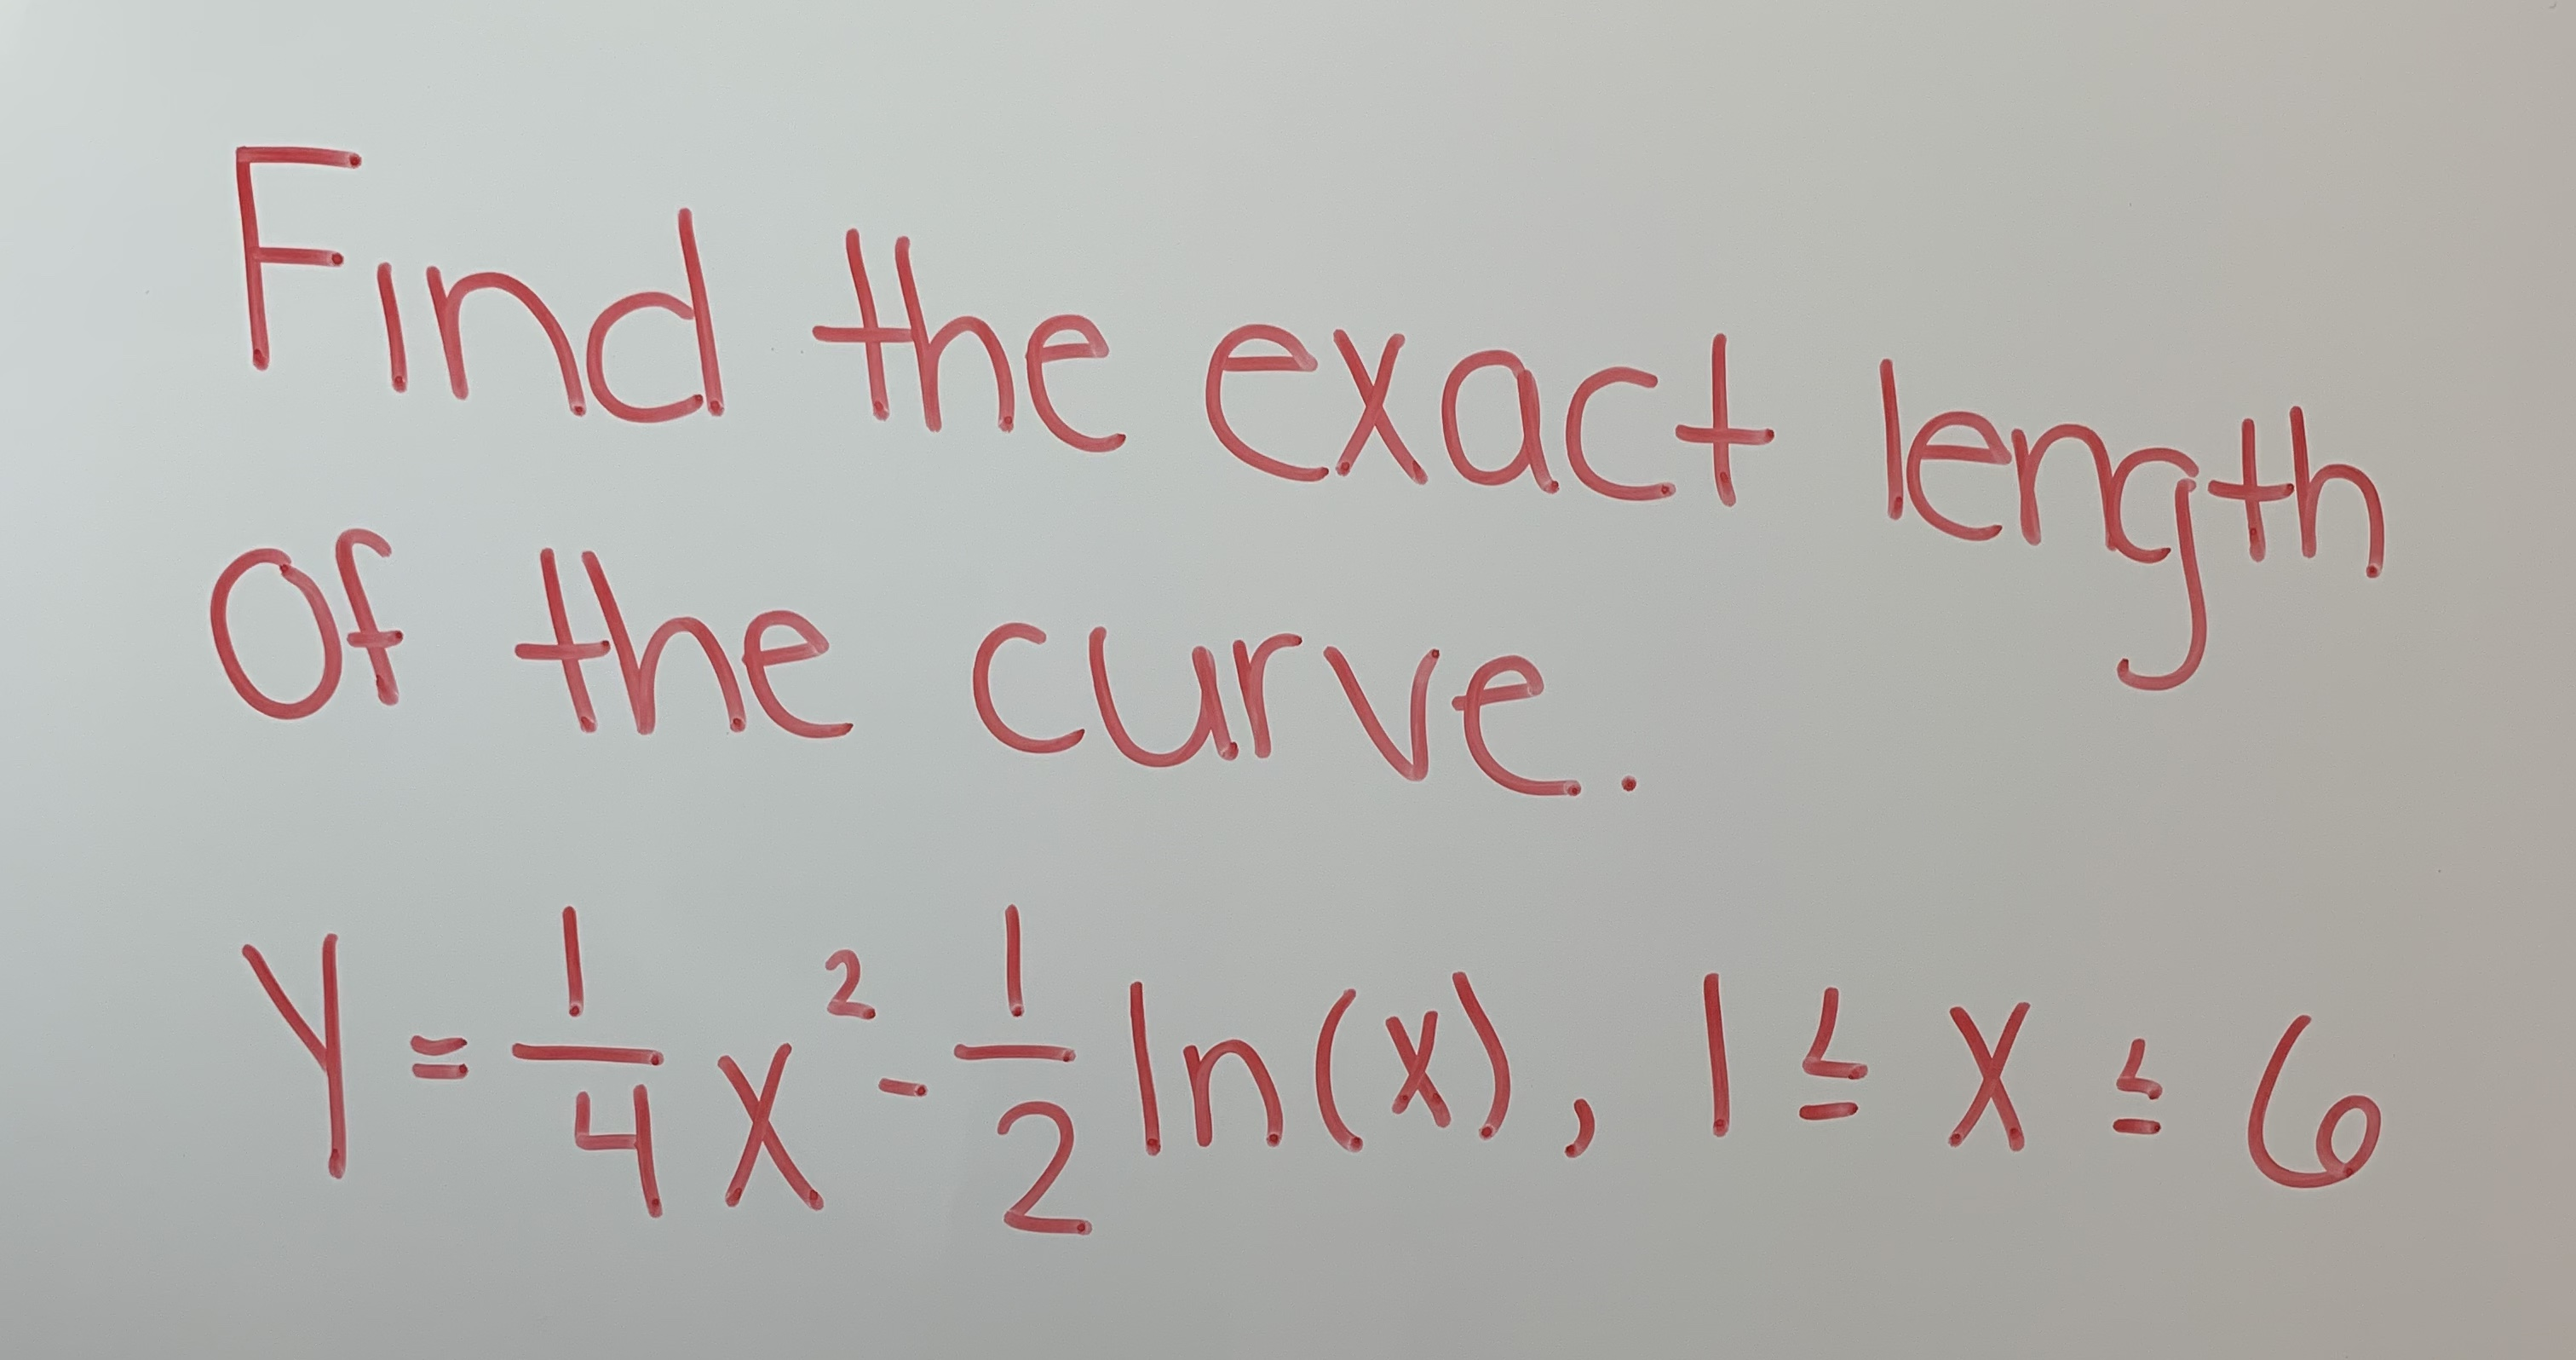 Find the exact length Ot the curve